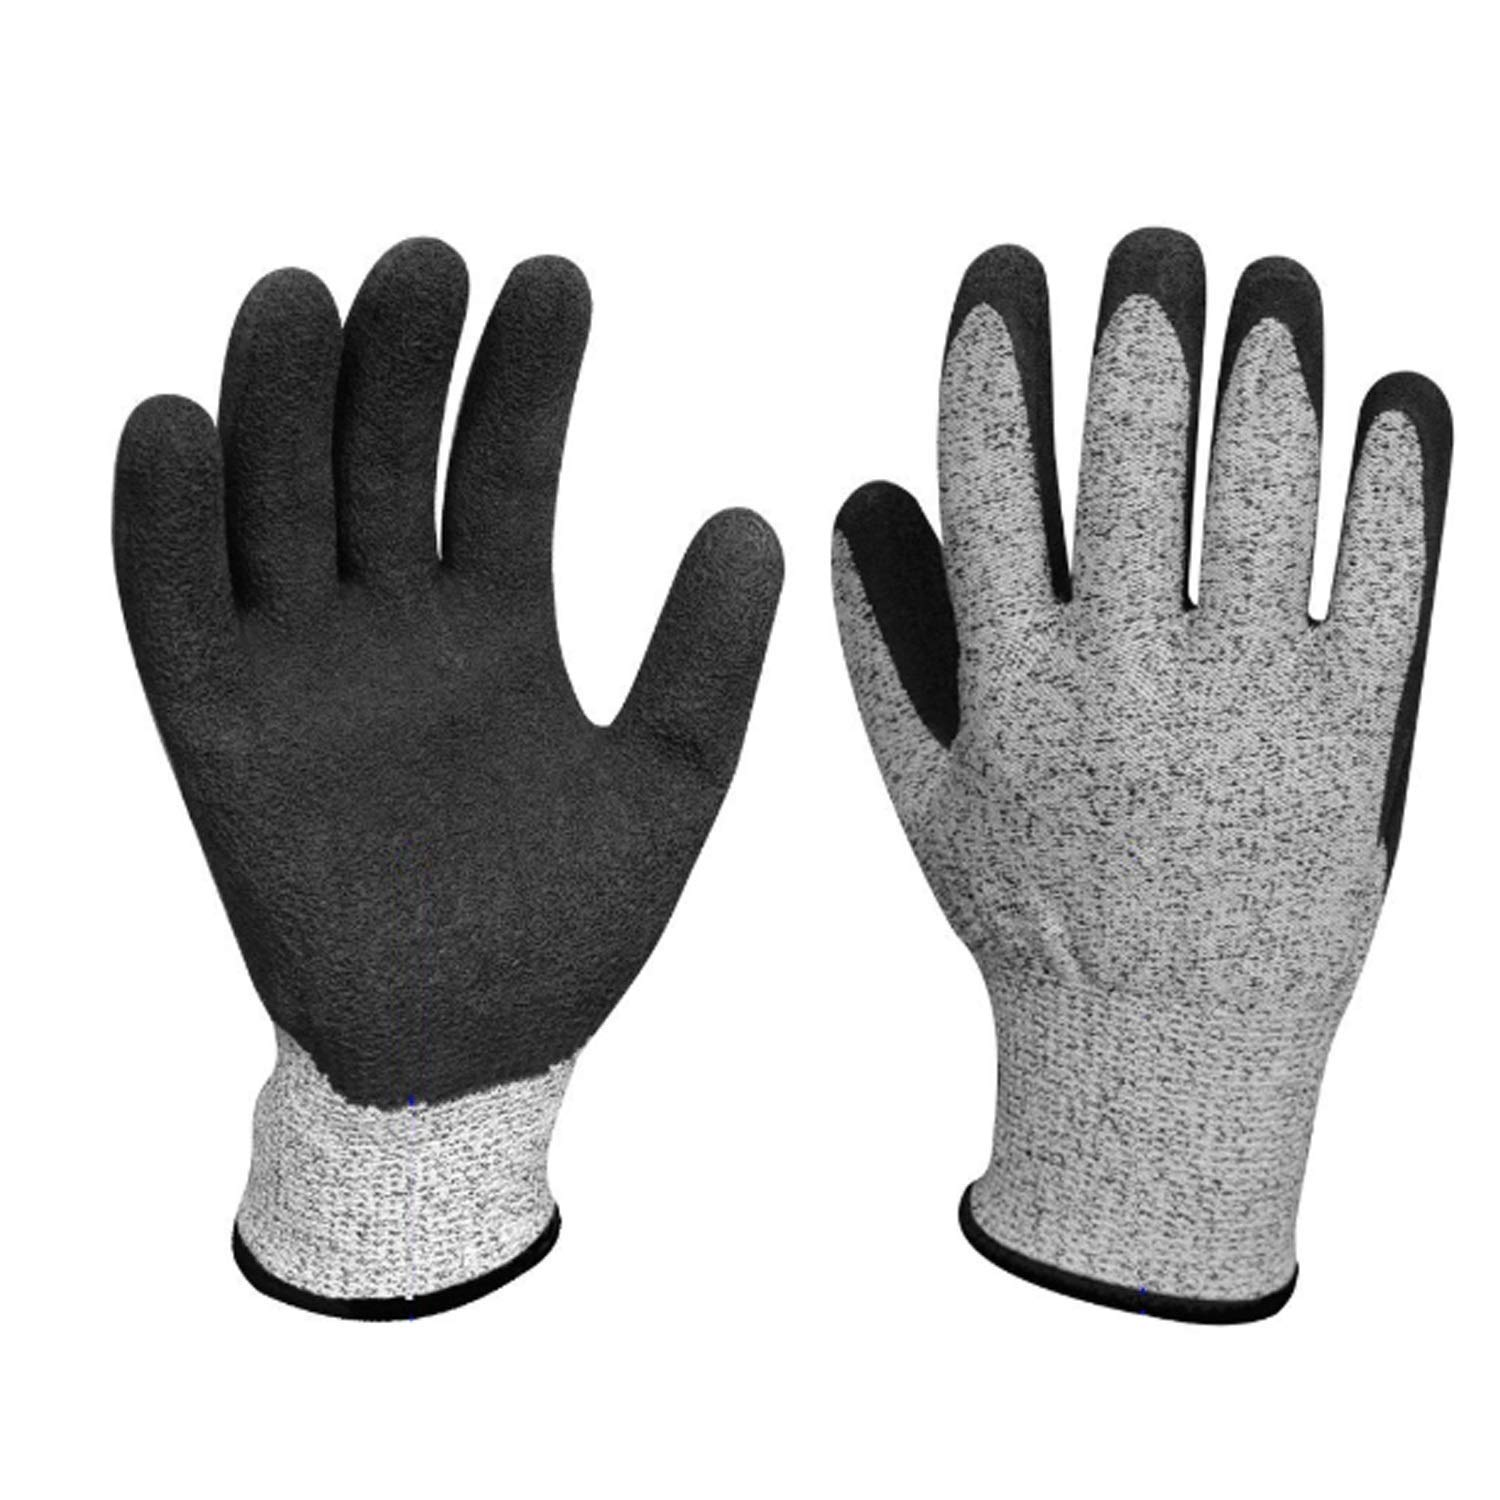 ACAO Textured Rubber Nitrile Palm Dipped/Coated for Construction, Men's X-Large Home Gardening (Color : 2 Pairs, Size : L-9(9.45 in)) by ACAO-Glove (Image #1)